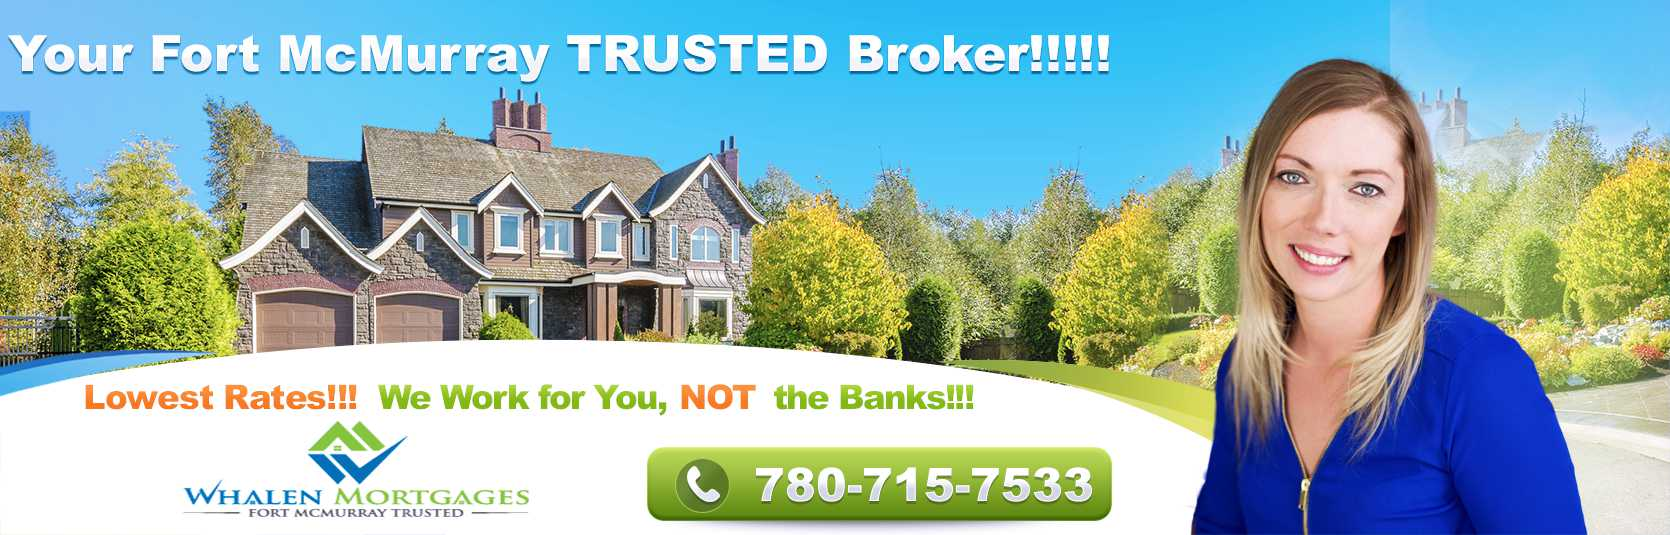 Fort McMurray Mortgage Broker : Fort McMurray Mortgage